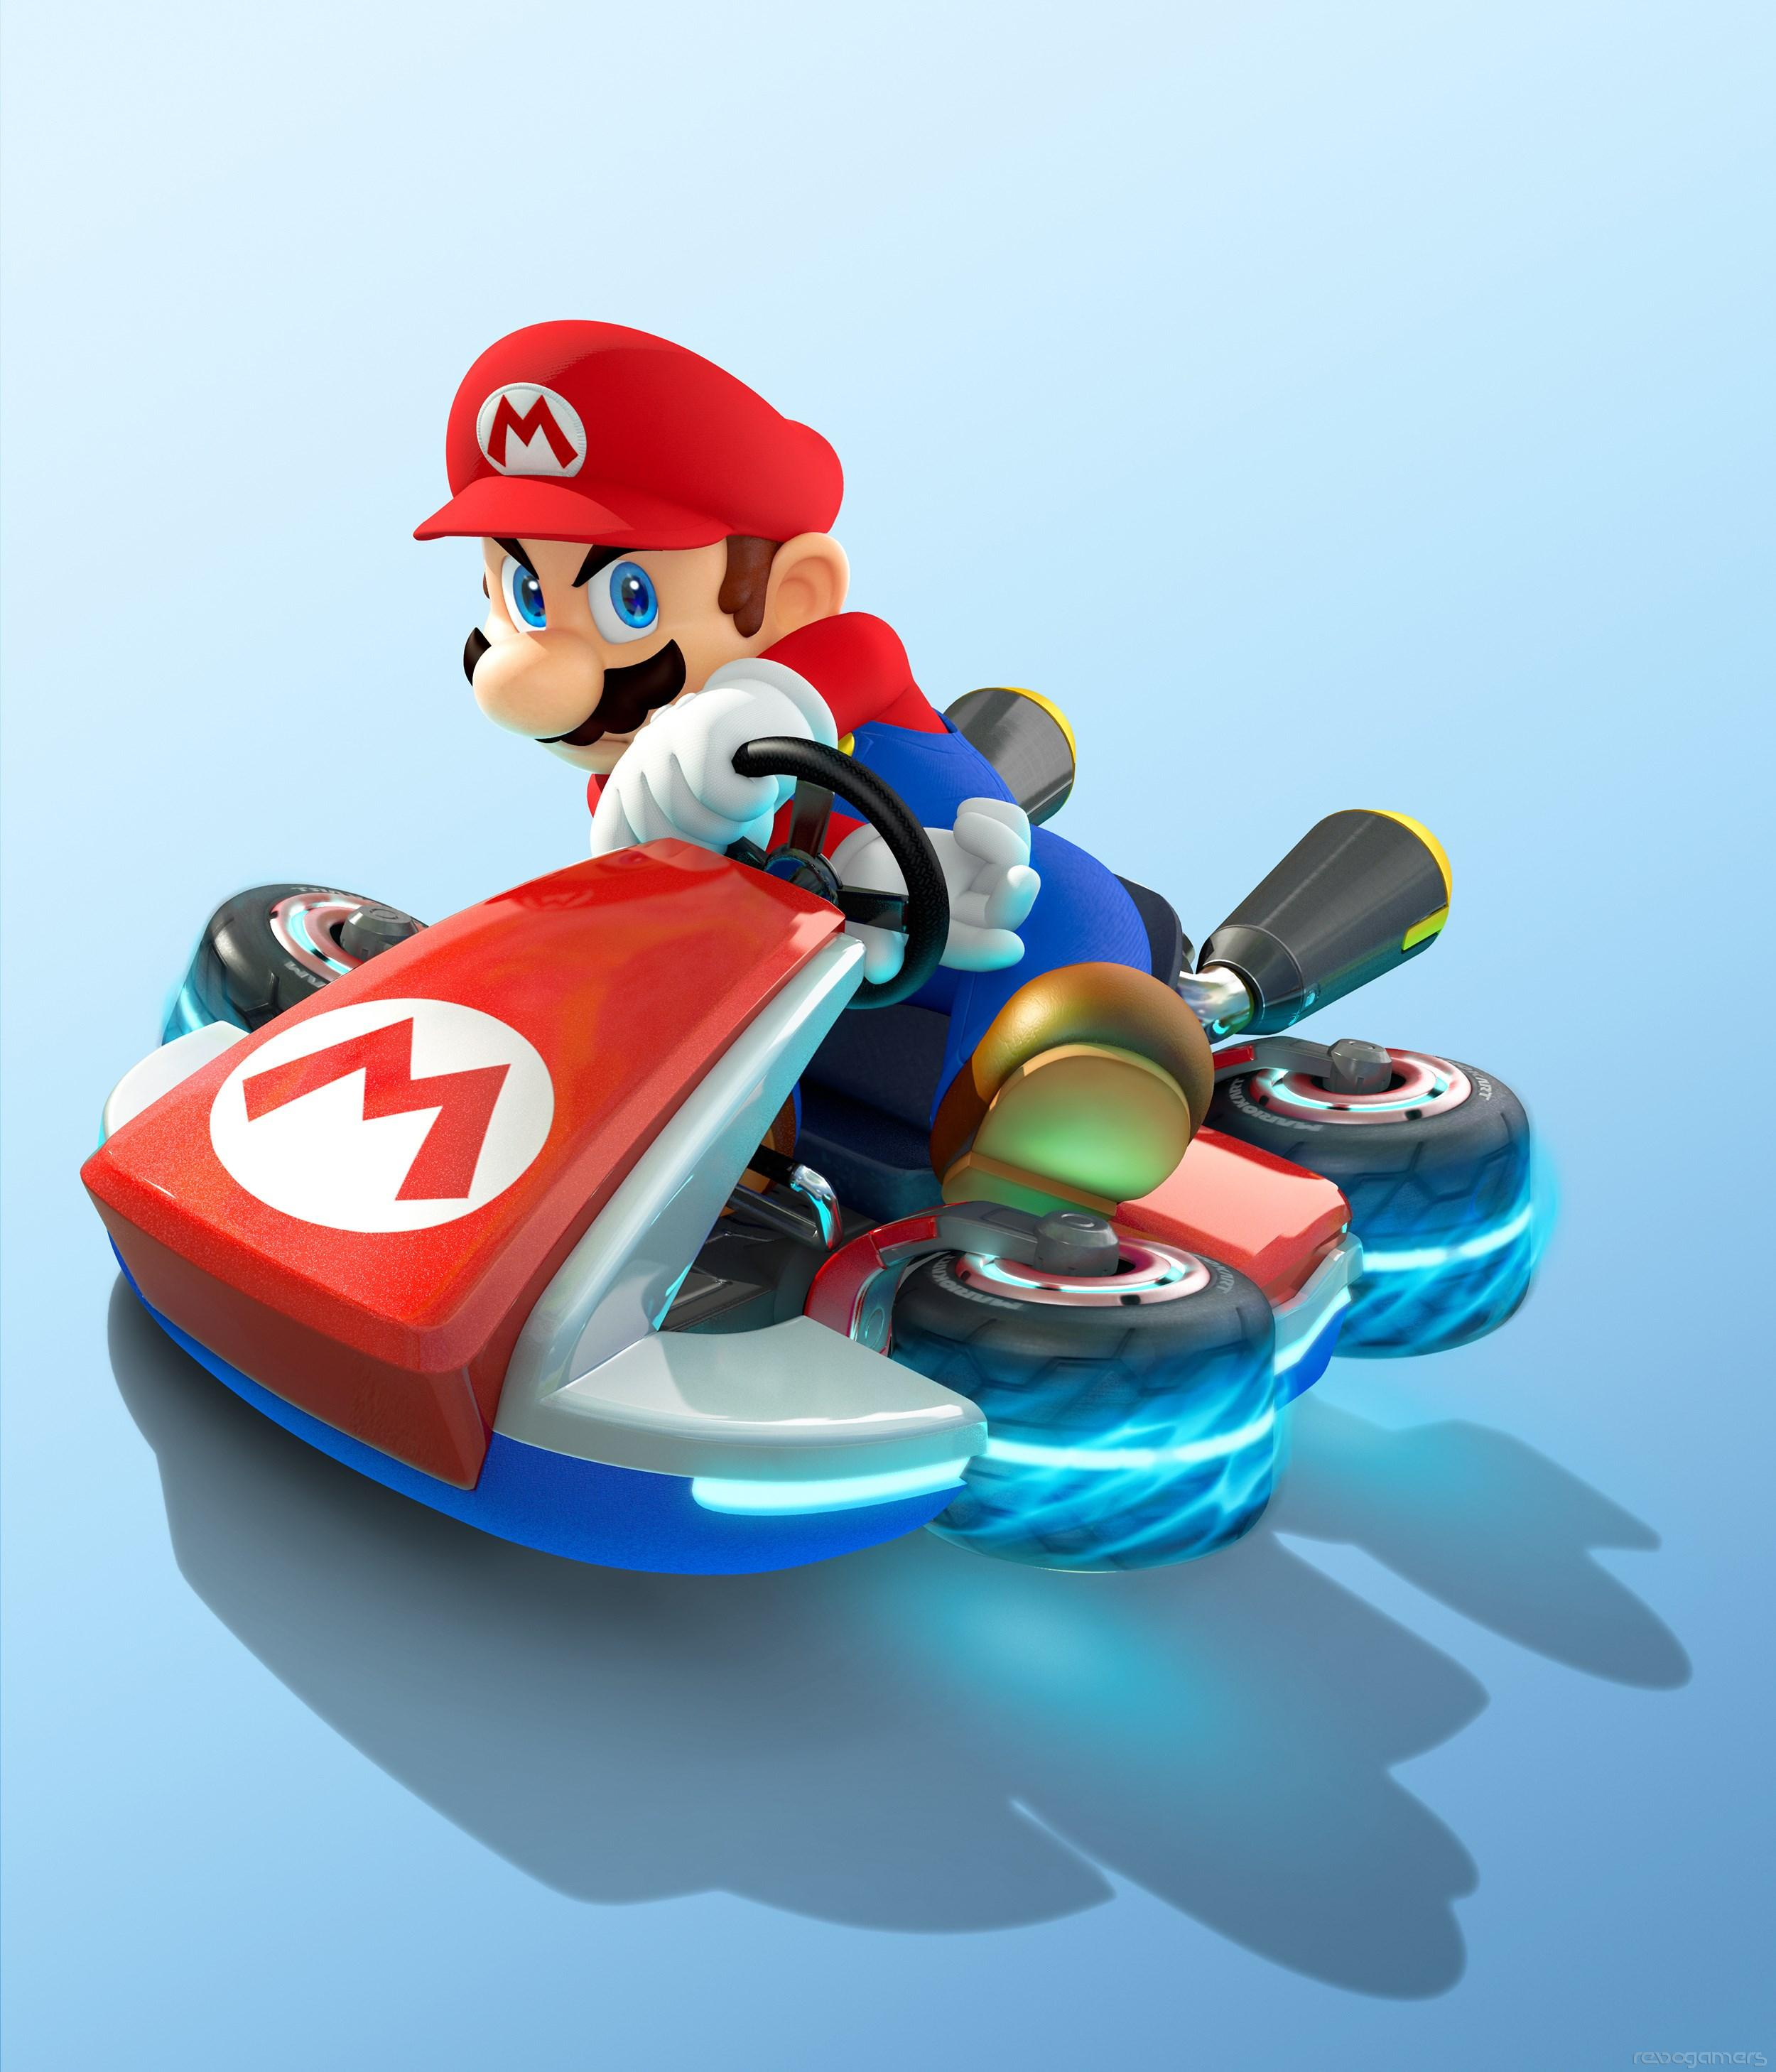 mario kart 8 impresiones vaya cambio wii u revogamers. Black Bedroom Furniture Sets. Home Design Ideas